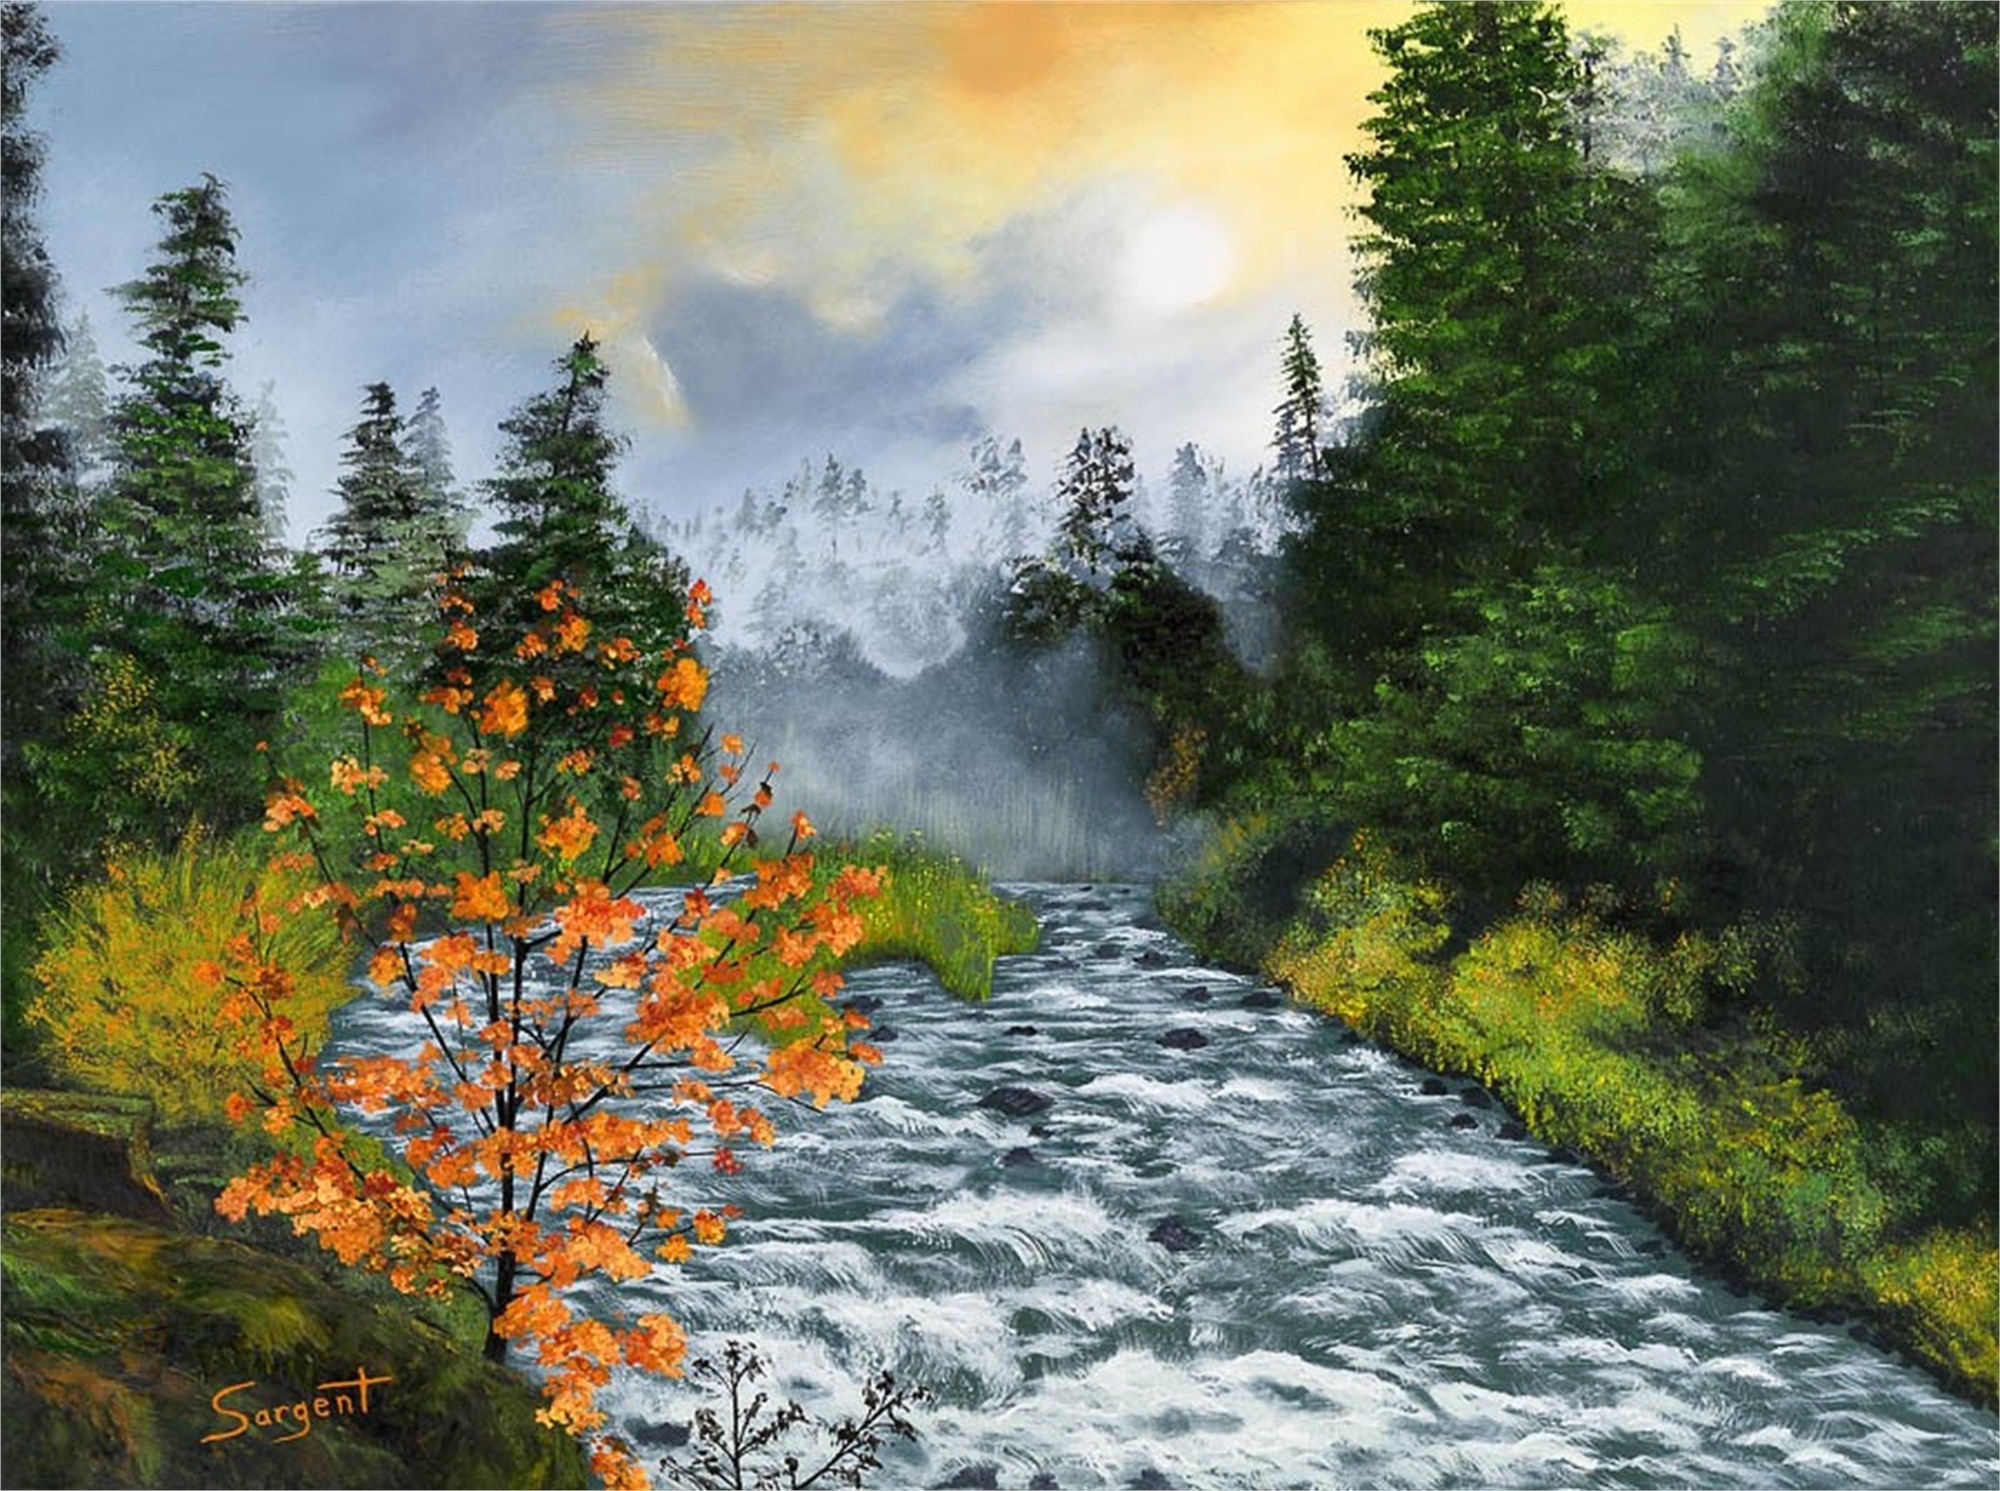 Memories of Metolius by Phil Sargent (Canby, OR)